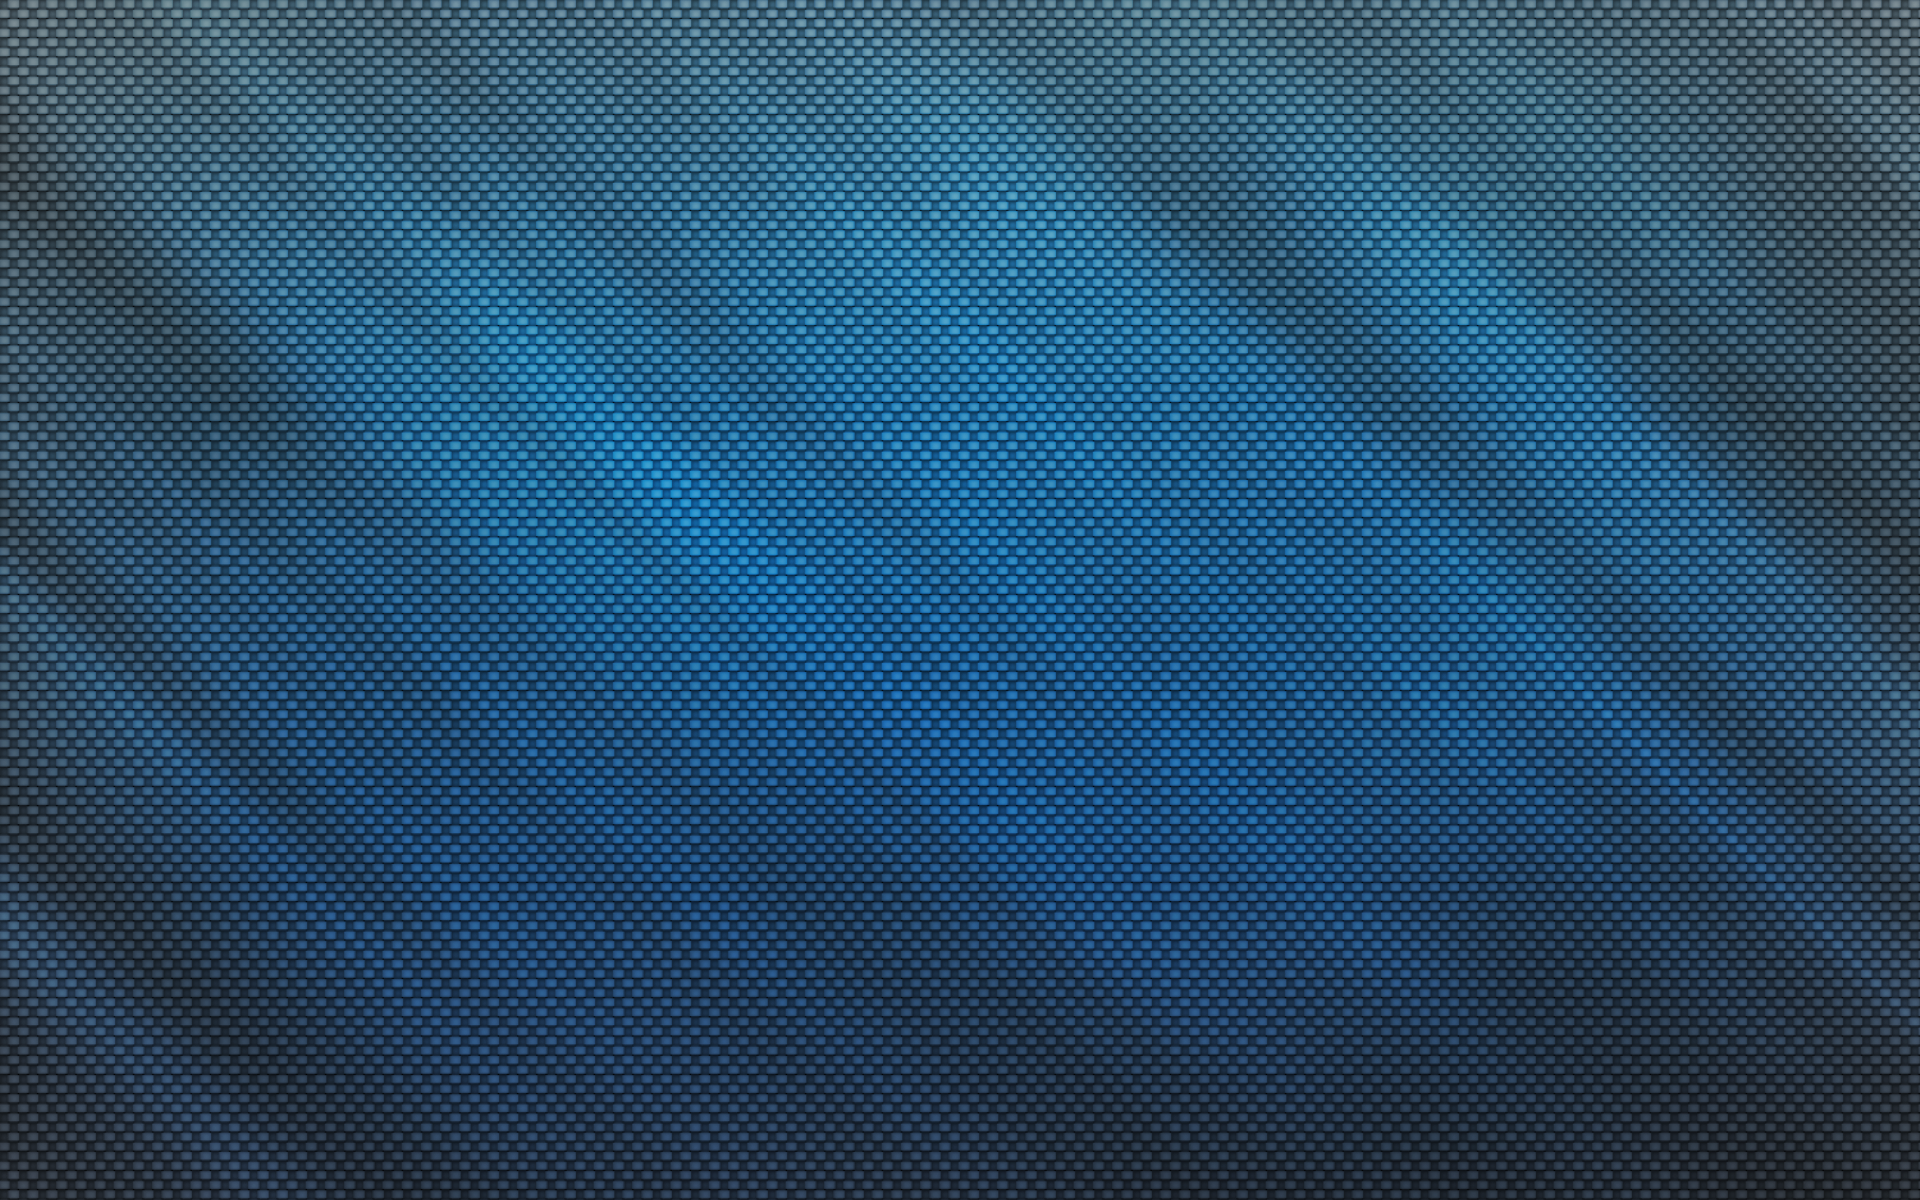 blue-carbon-fiber-wallpaper-hd-reflection-download | wallpaper.wiki